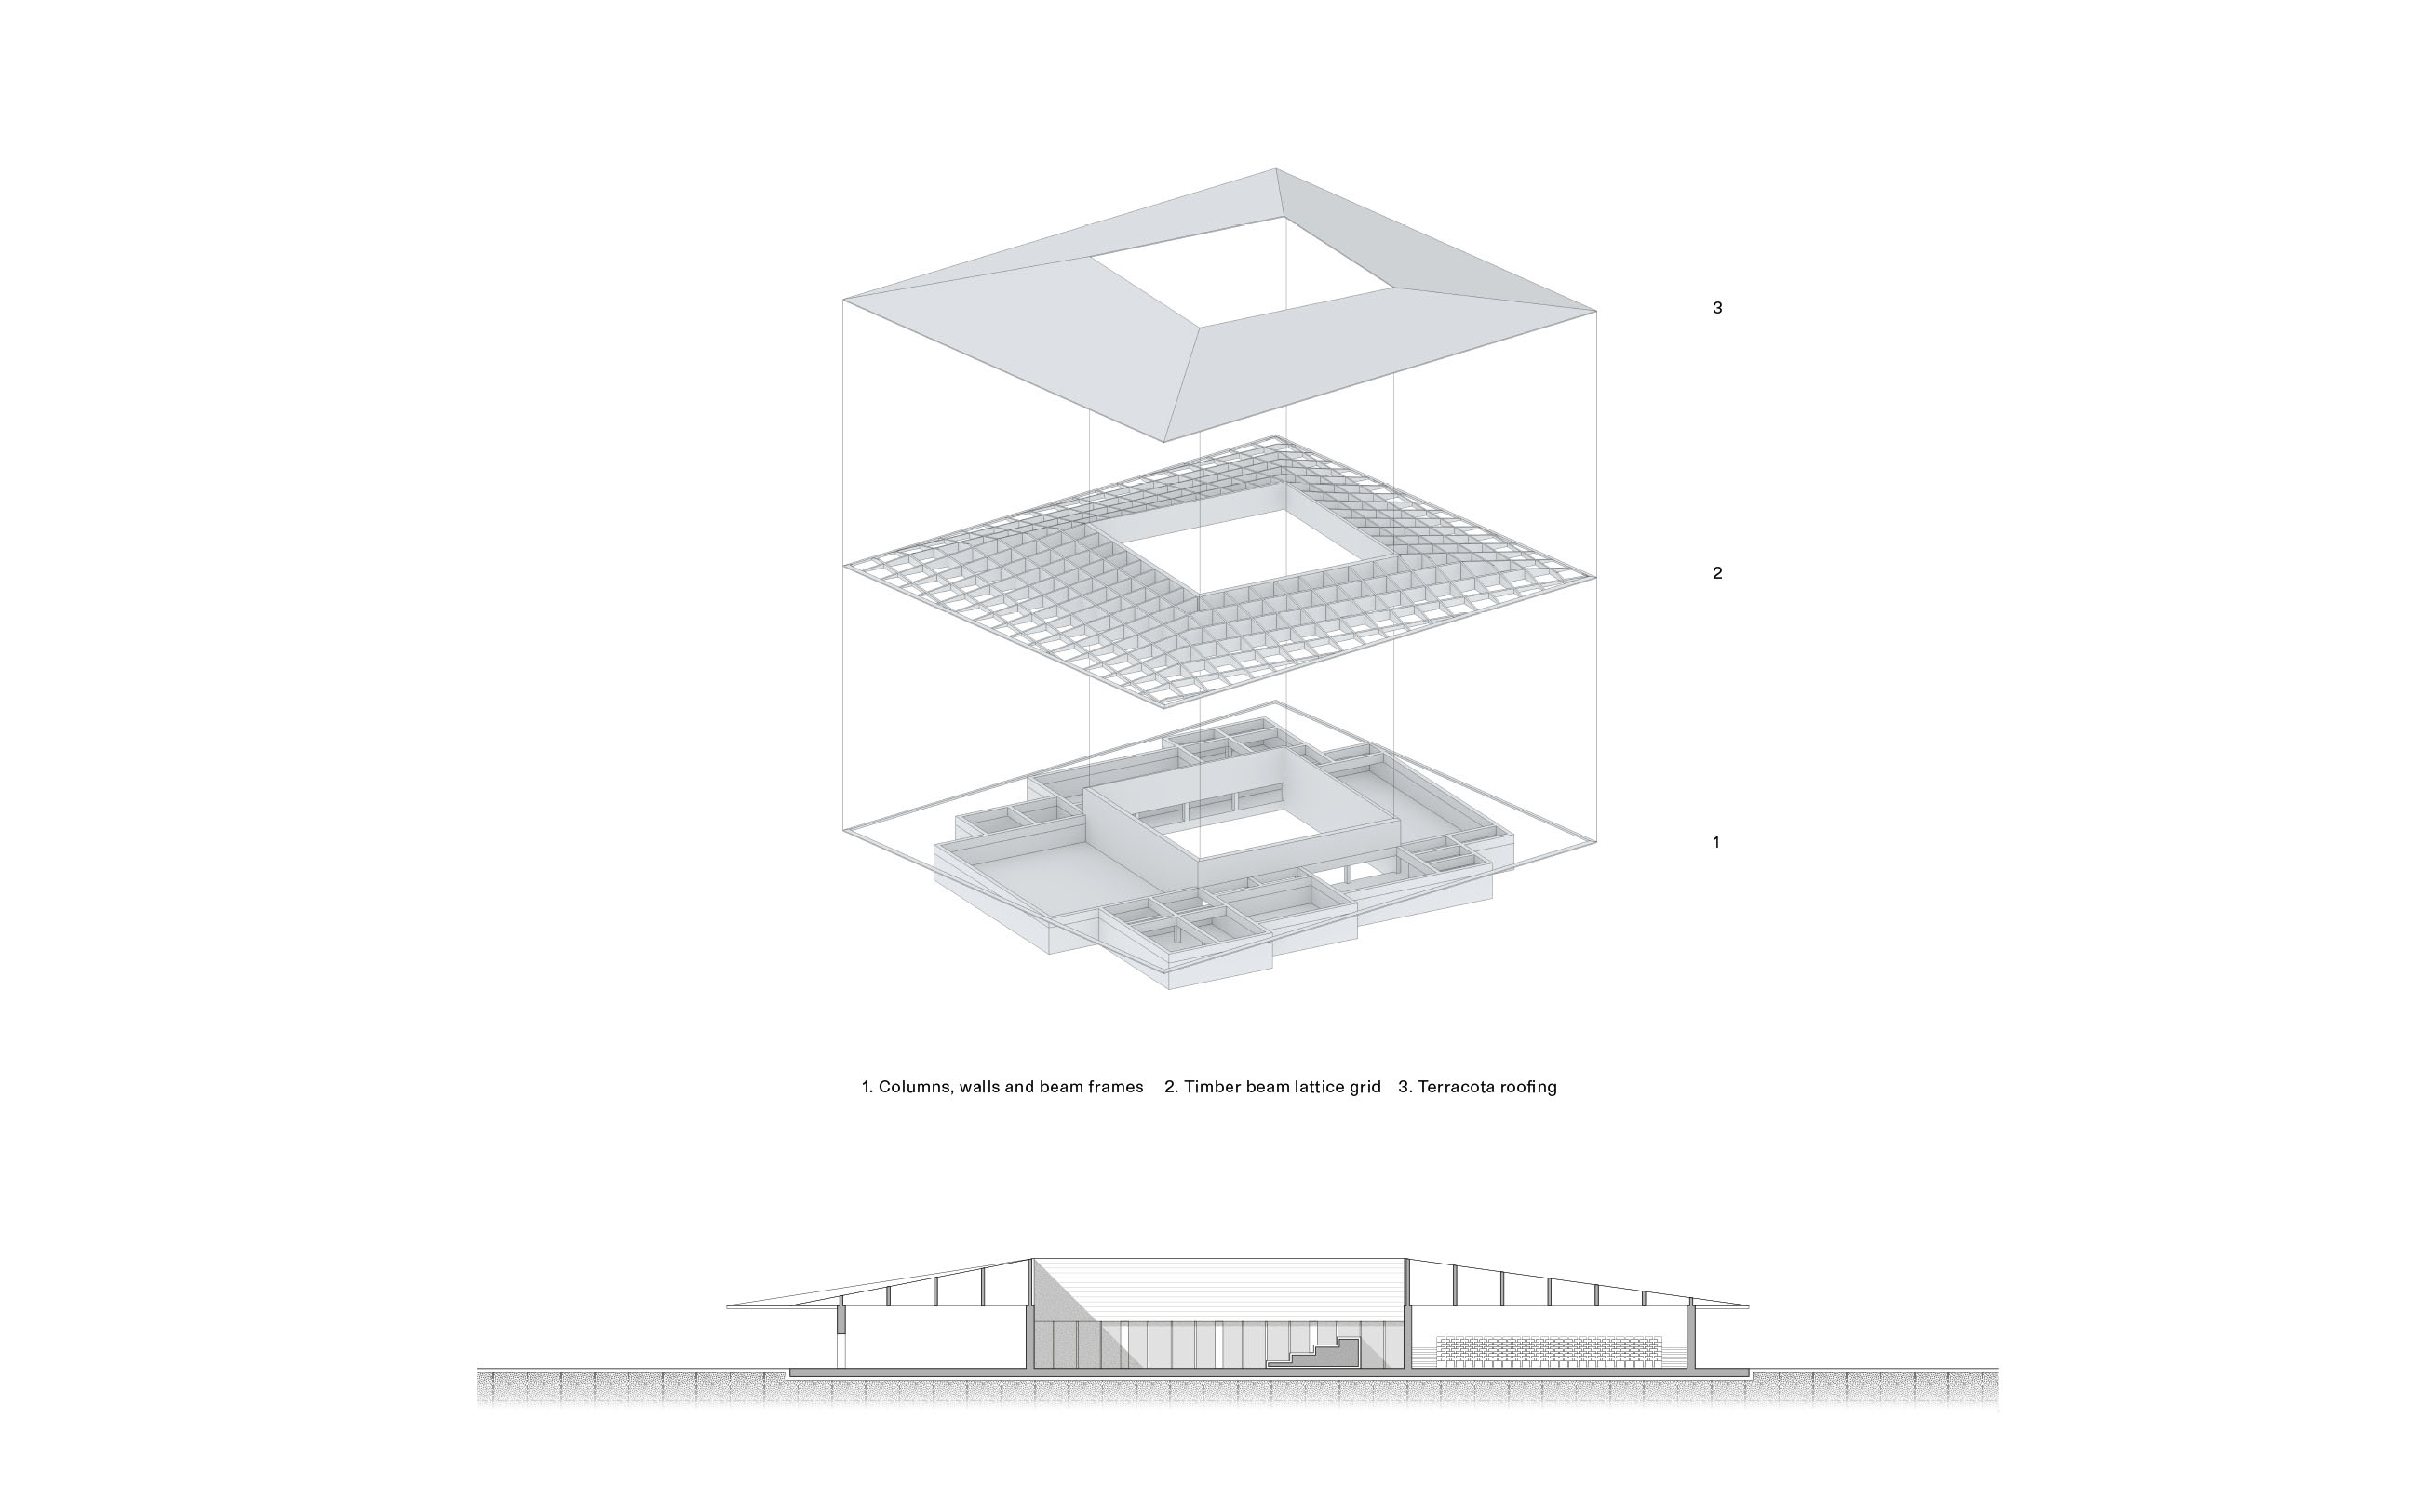 11_About Architecture_Nikozi 2nd prize